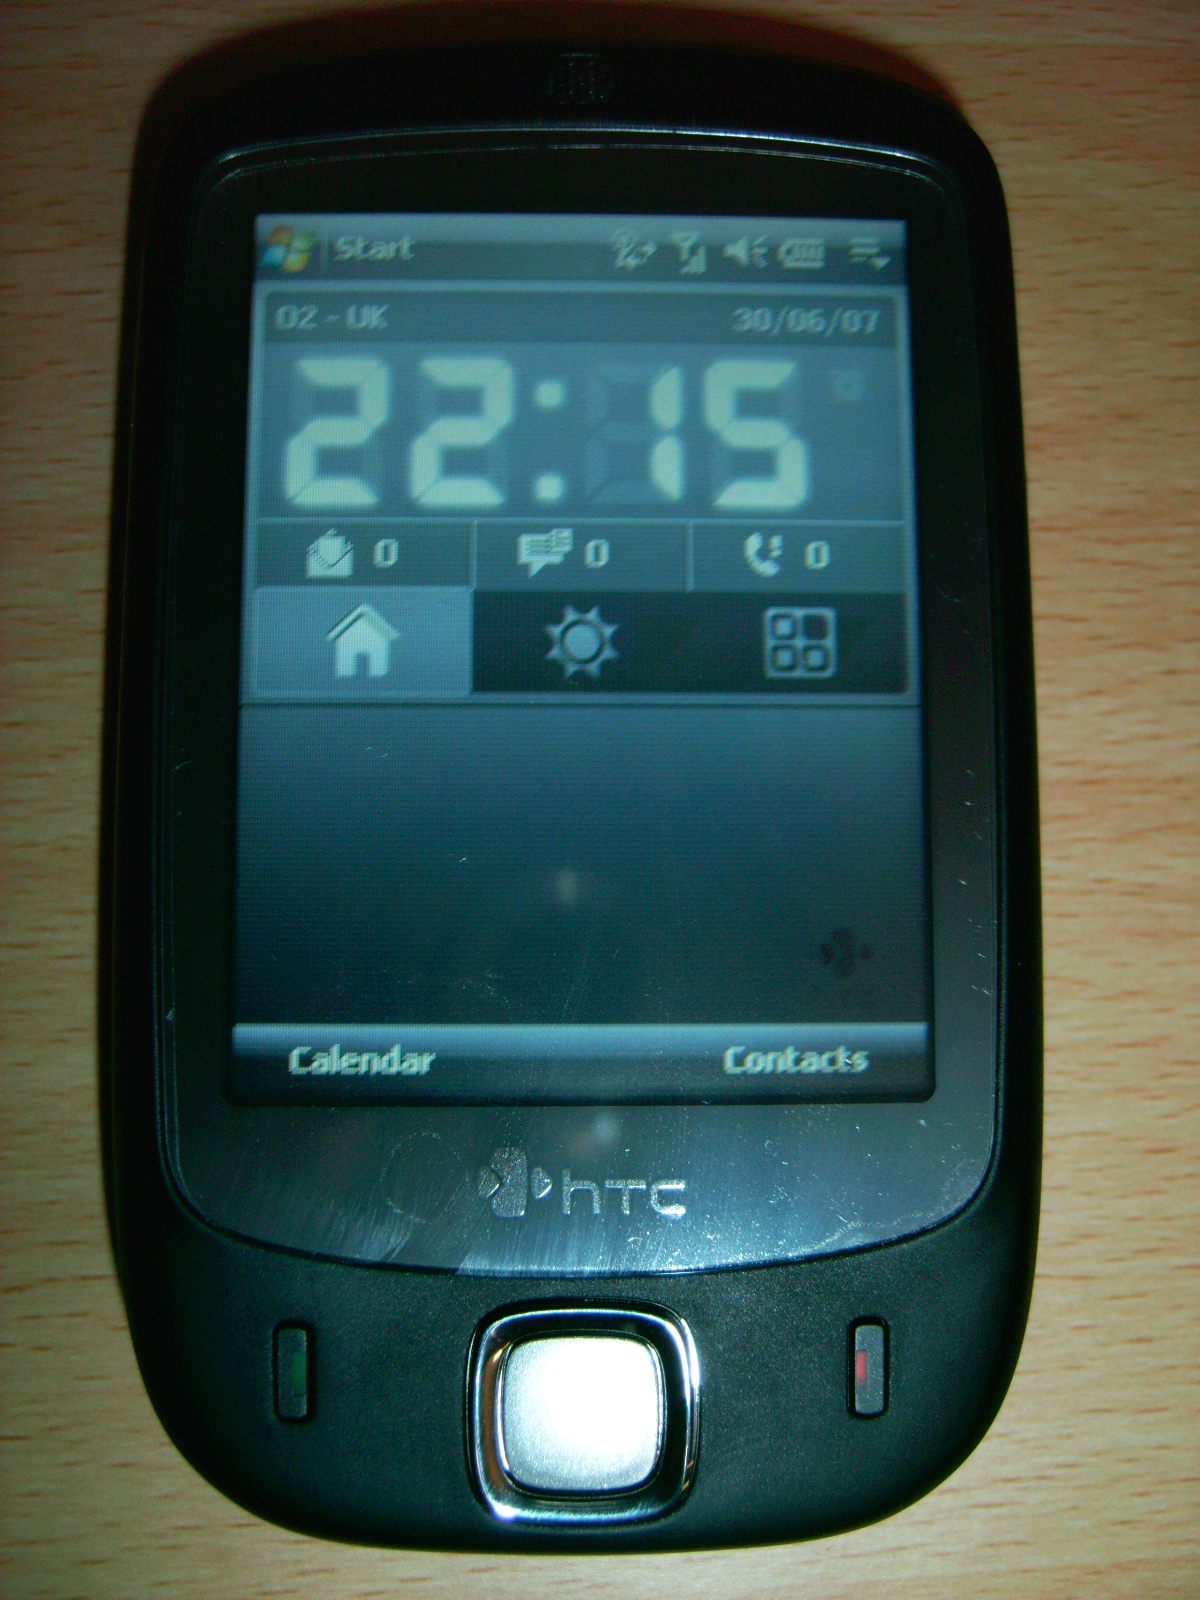 htc touch viva windows mobile 6.5 download